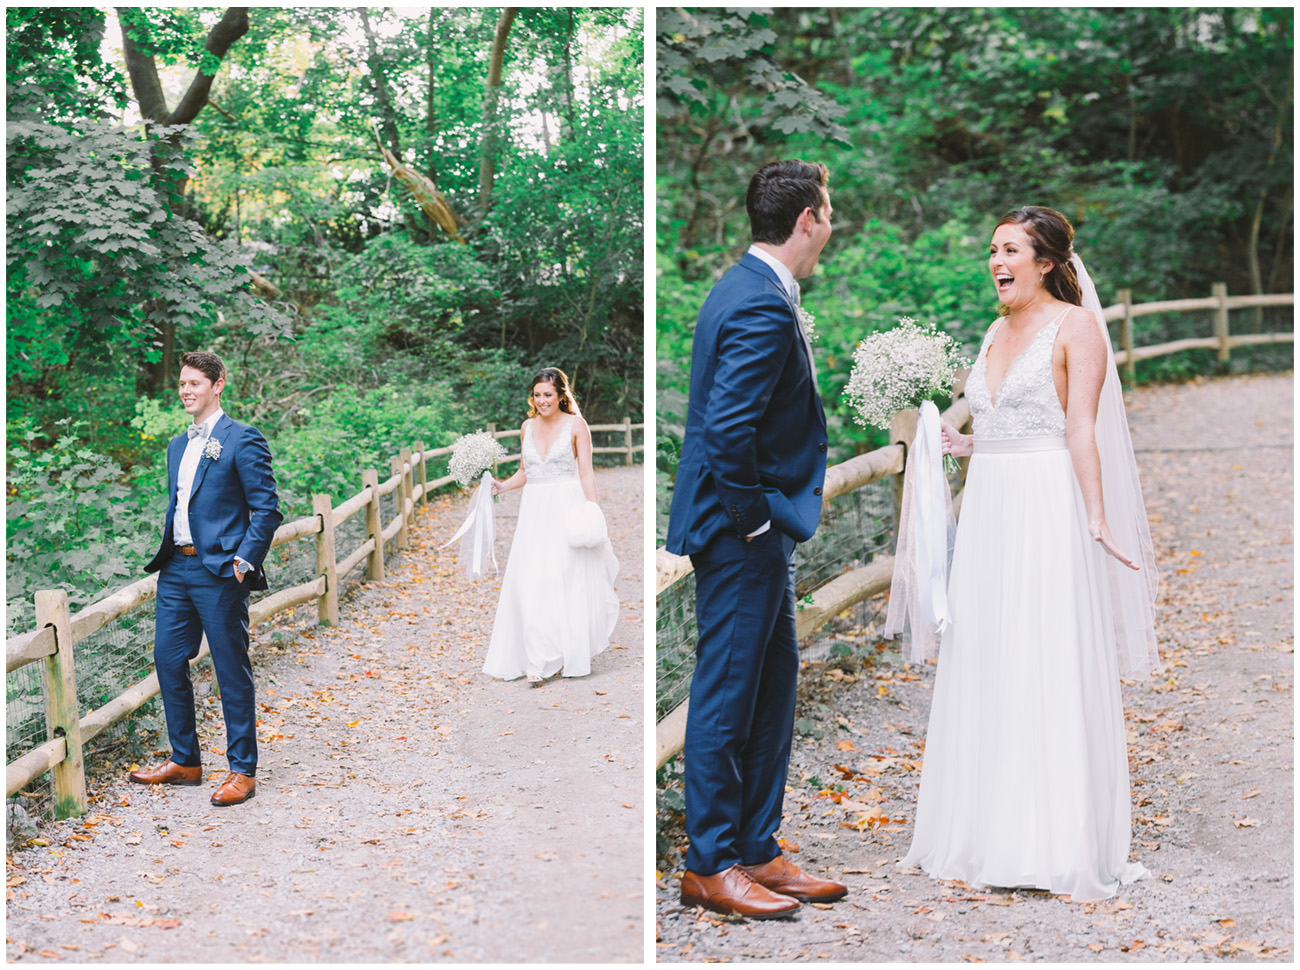 First look photo of bride and groom in Don Valley.